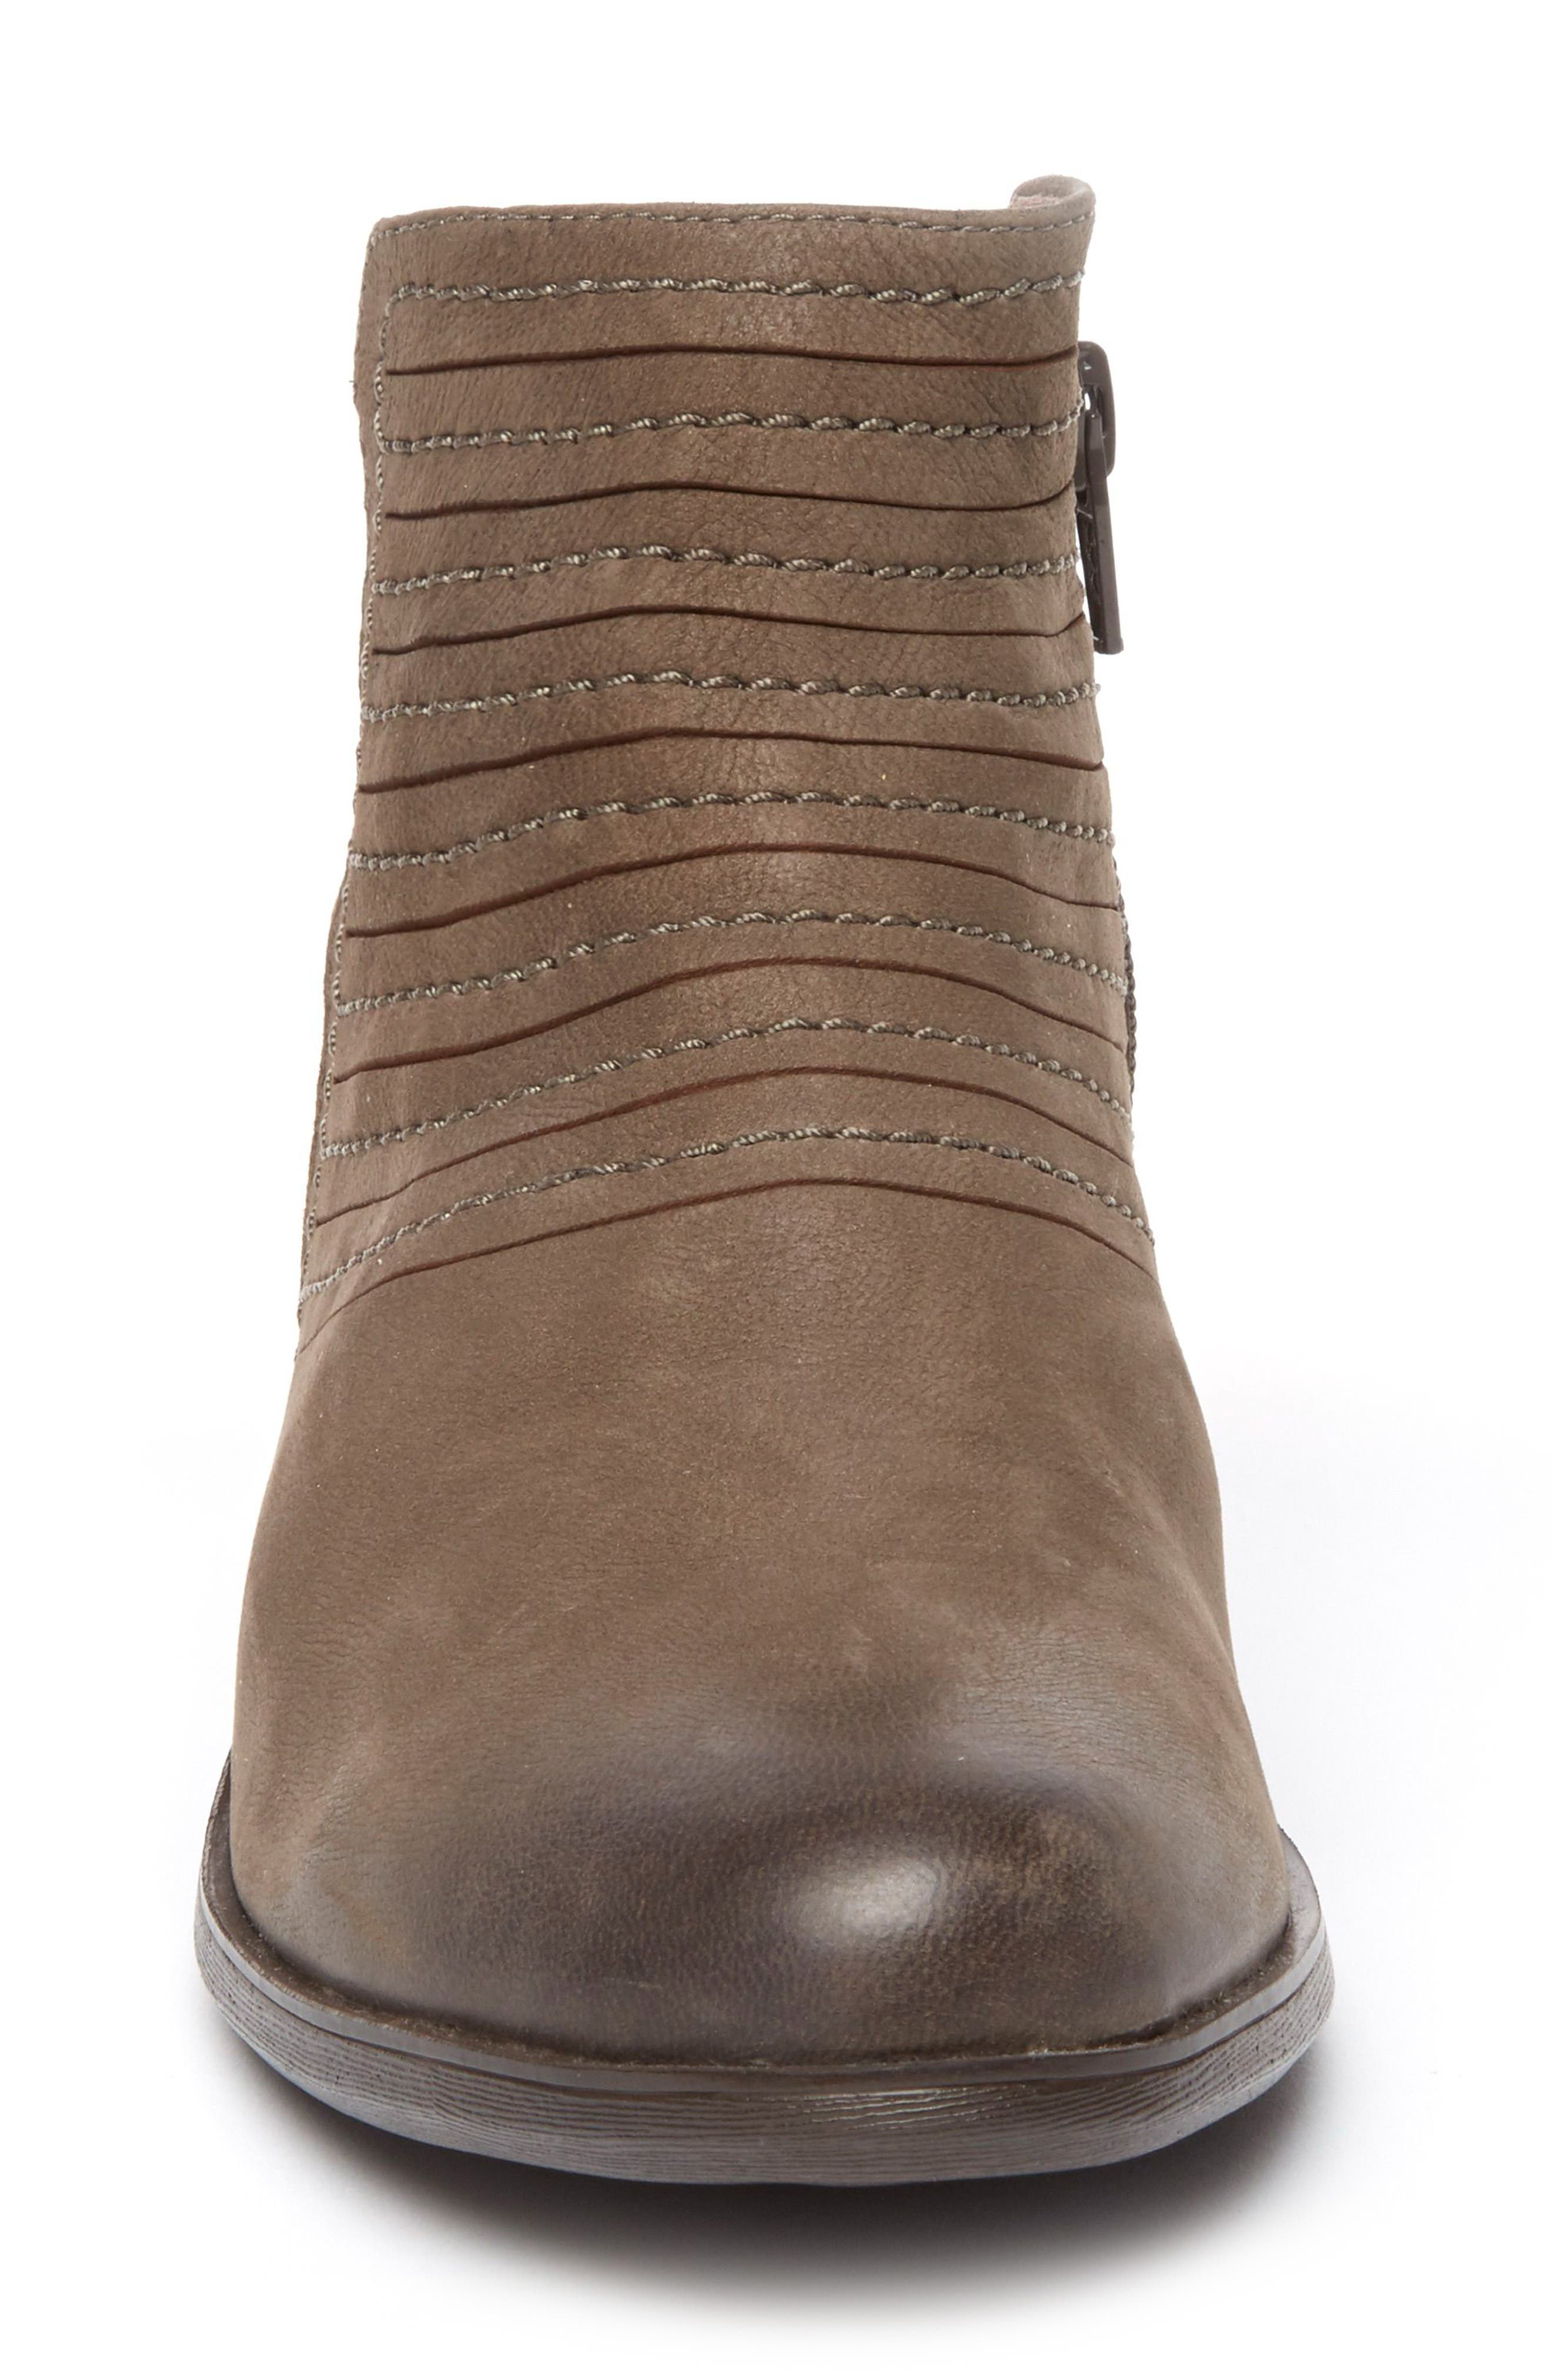 Vanna Strappy Bootie,                             Alternate thumbnail 4, color,                             Olive Grey Nubuck